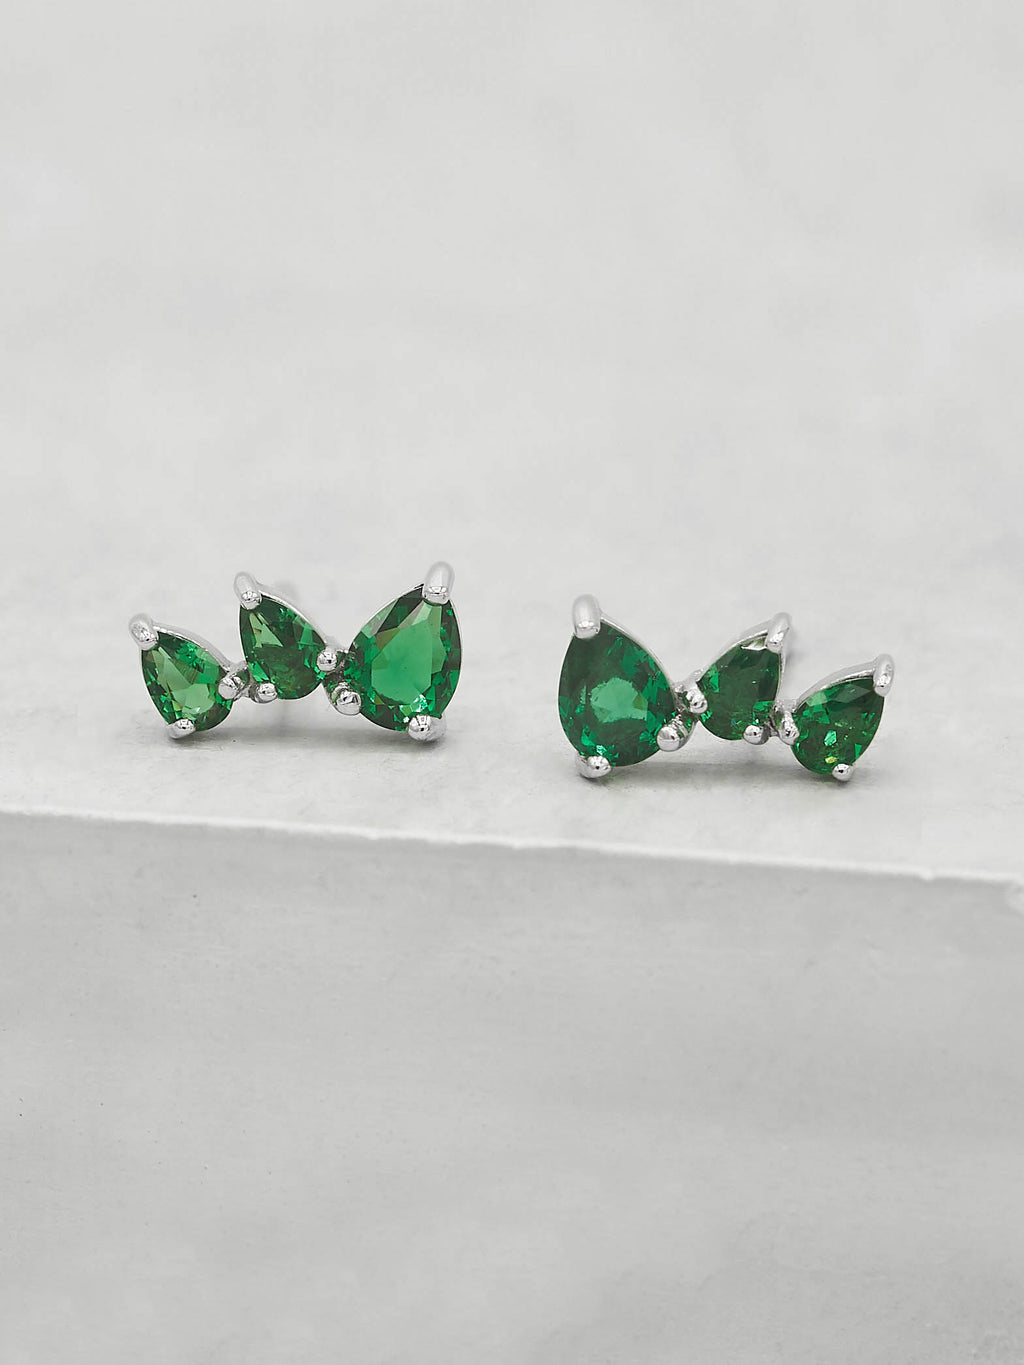 Rhodium Plated  3 Stones Green Pear Shape Cubic Zirconia CZ Stud Ear crawlers style Earrings by The Faint Hearted jewelry